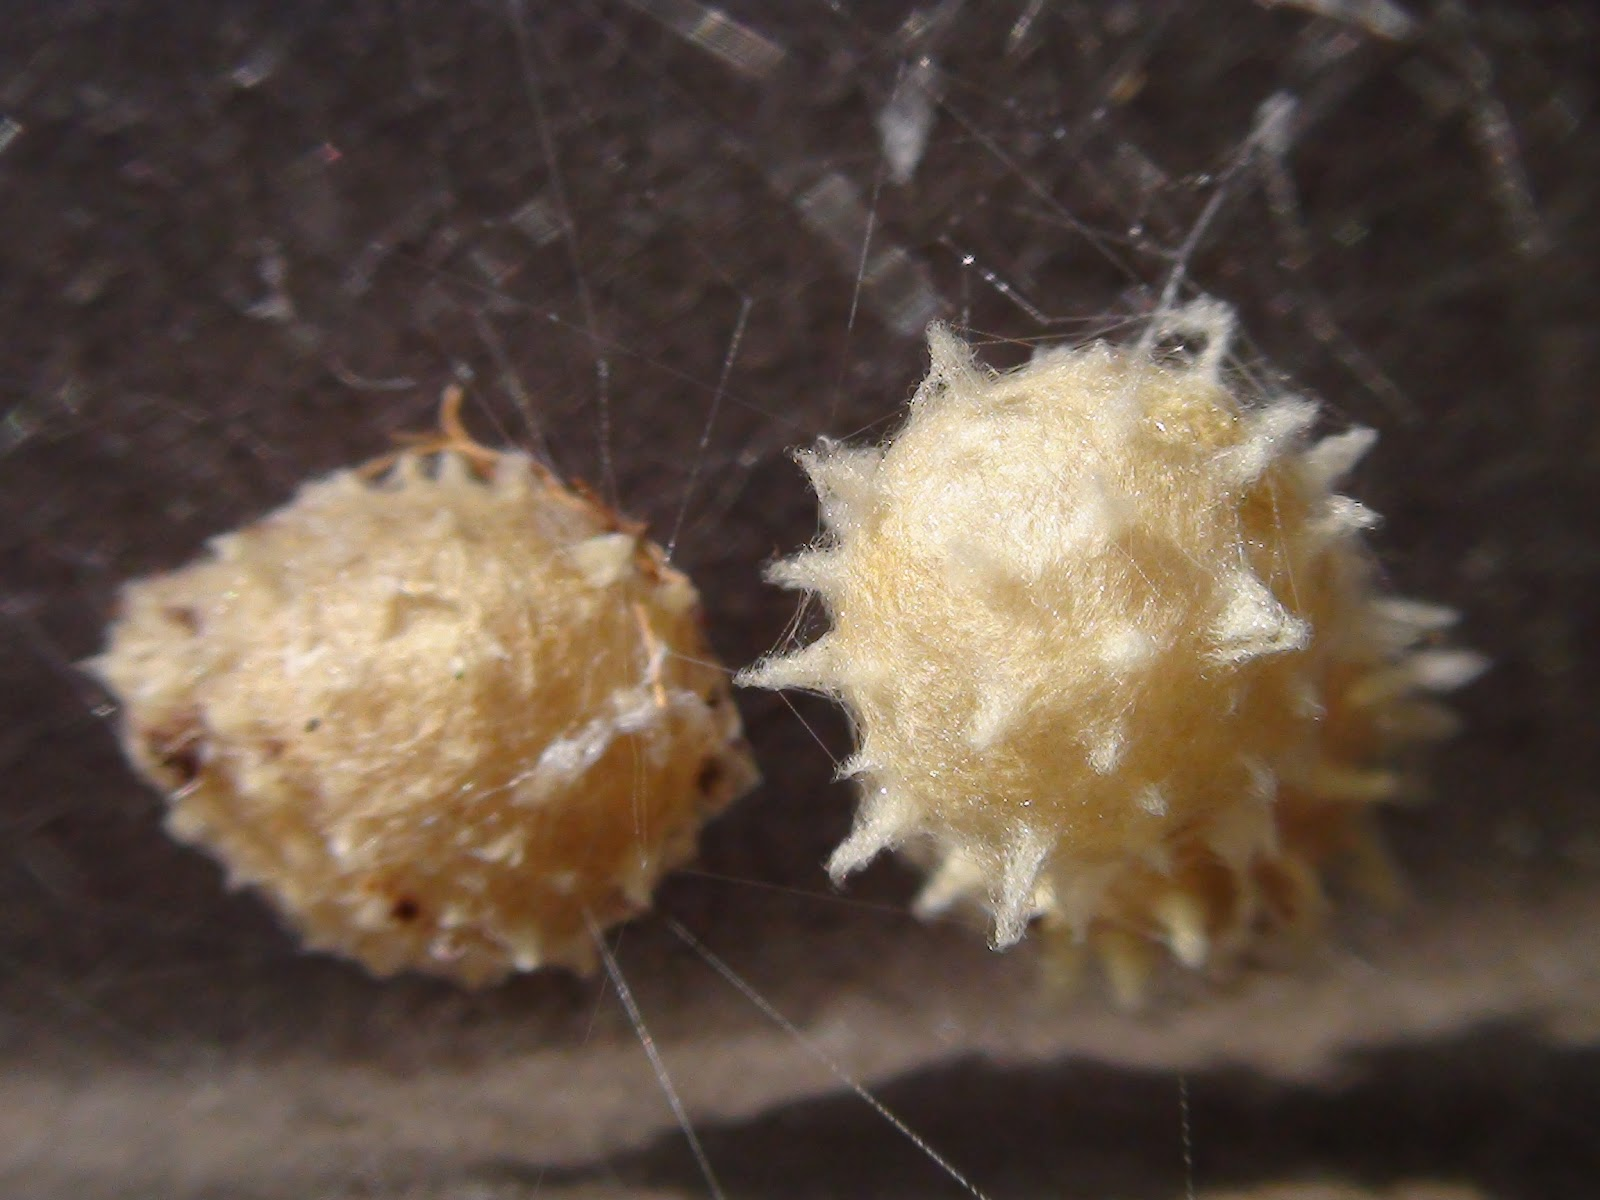 Black widow spider eggs - photo#2